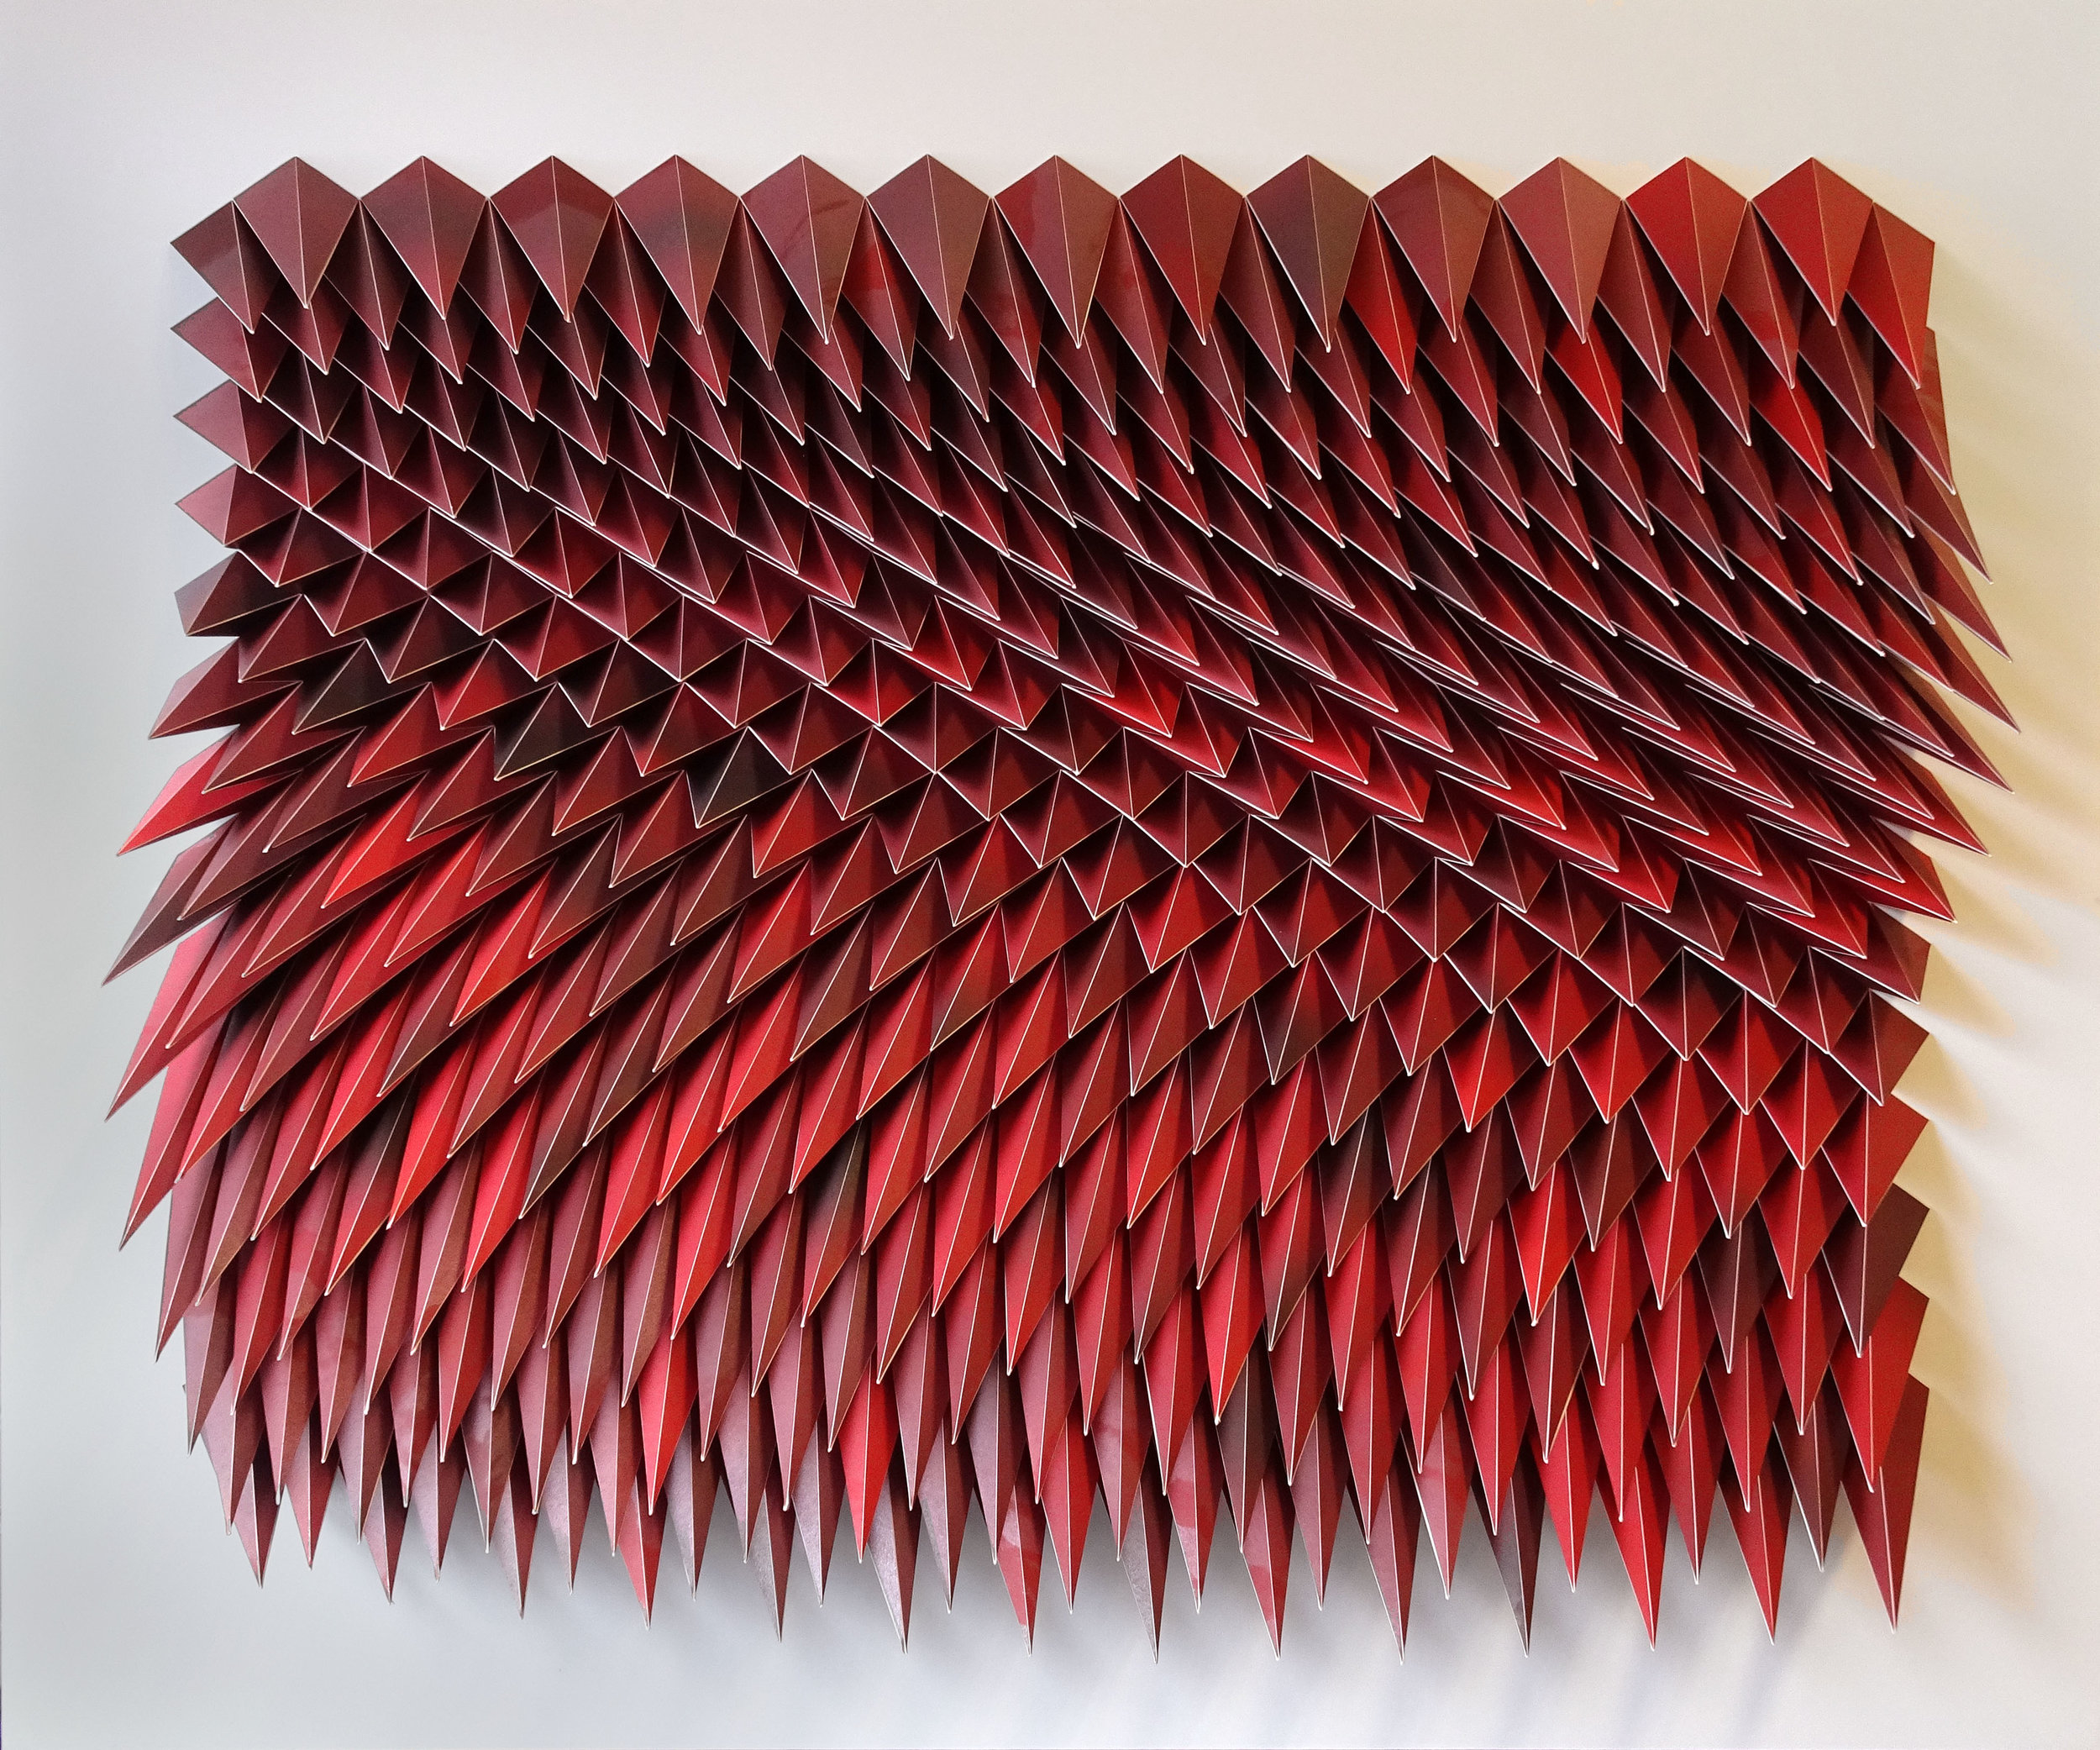 """Unholy 85 (Go Down Moses, There's Fire in the Woods),  Cut and Folded Offset Tamarind Prints in Blood Red, 40""""H x 48""""W x 5""""D"""